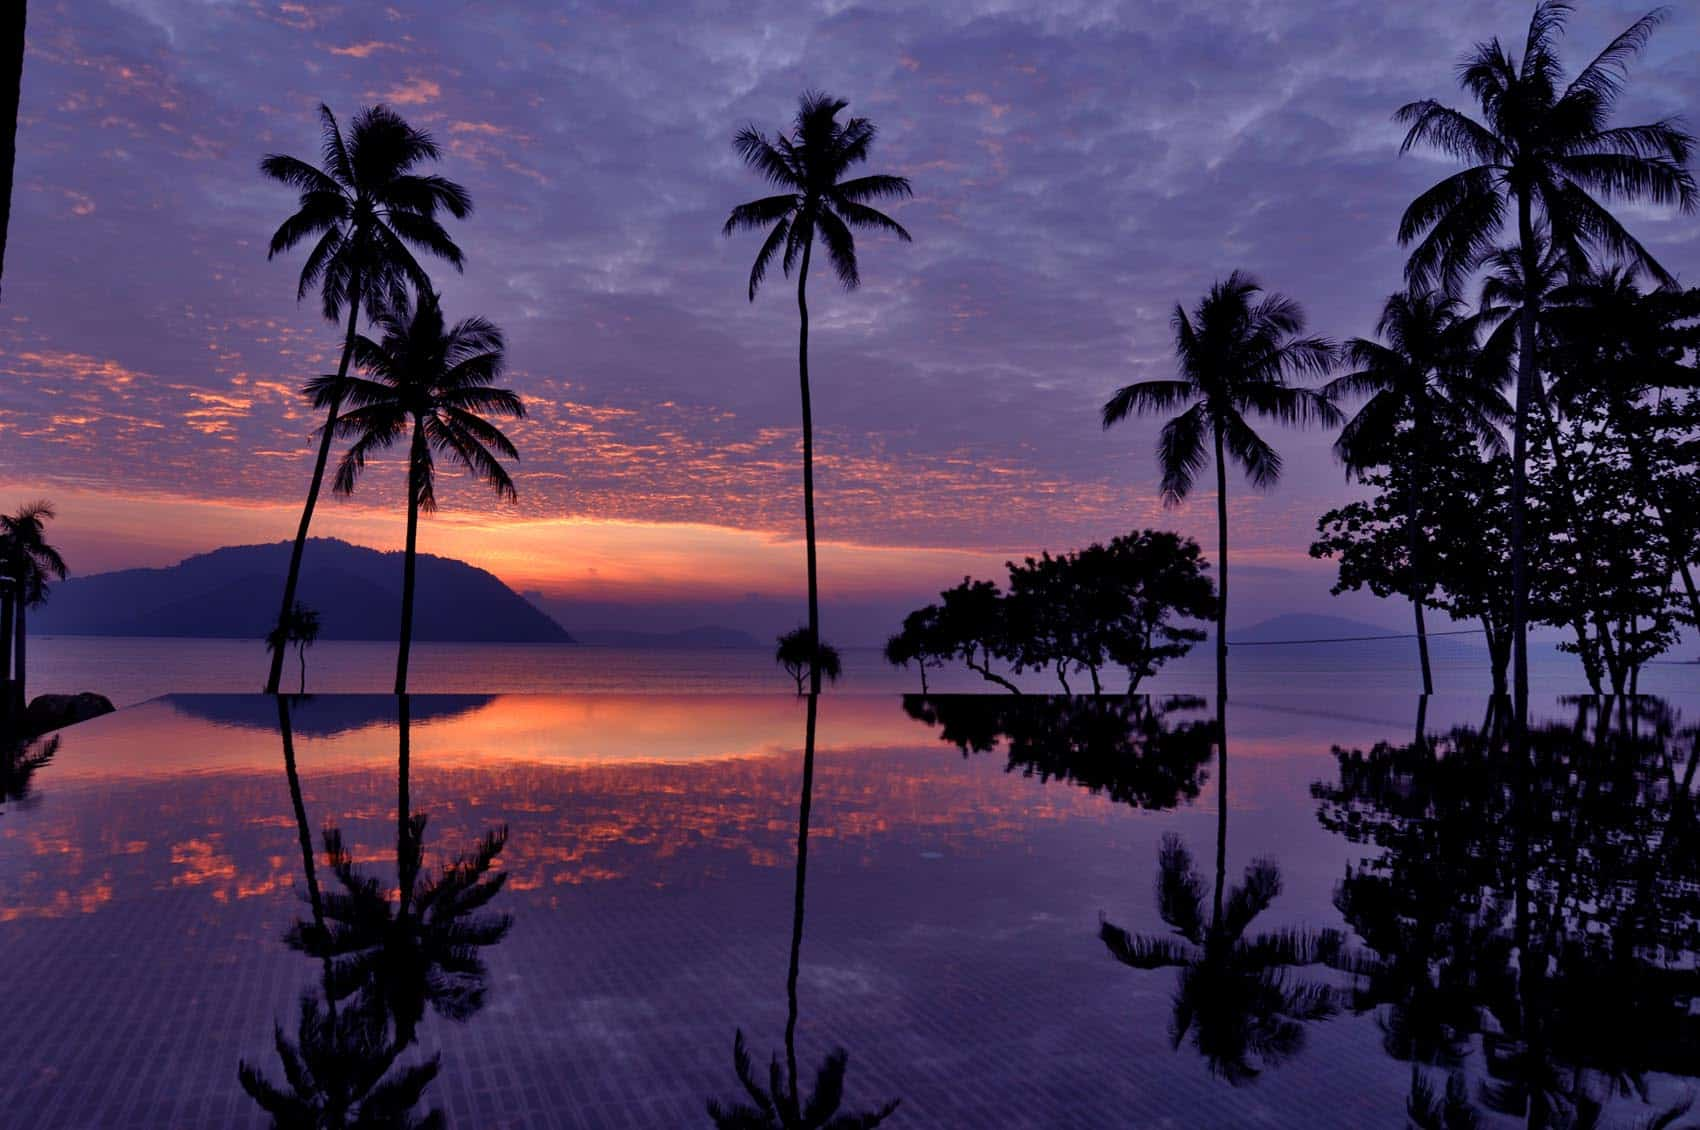 Sunset above the swimming pool at Vijitt Resort Phuket with palm trees and islands in the distance